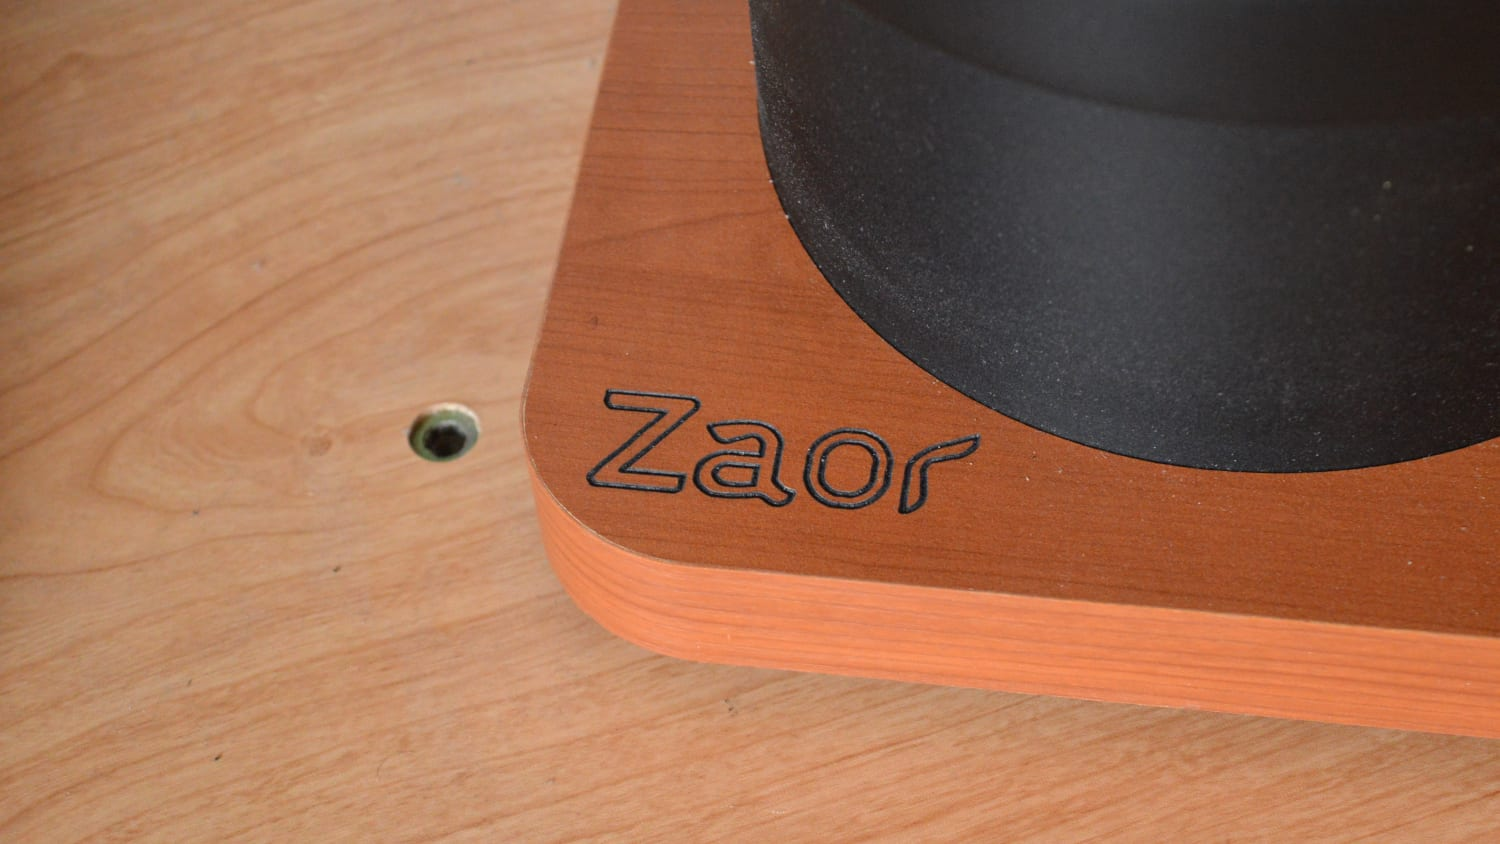 Zaor Miza D Stand Speaker Stands Review All Things Gear